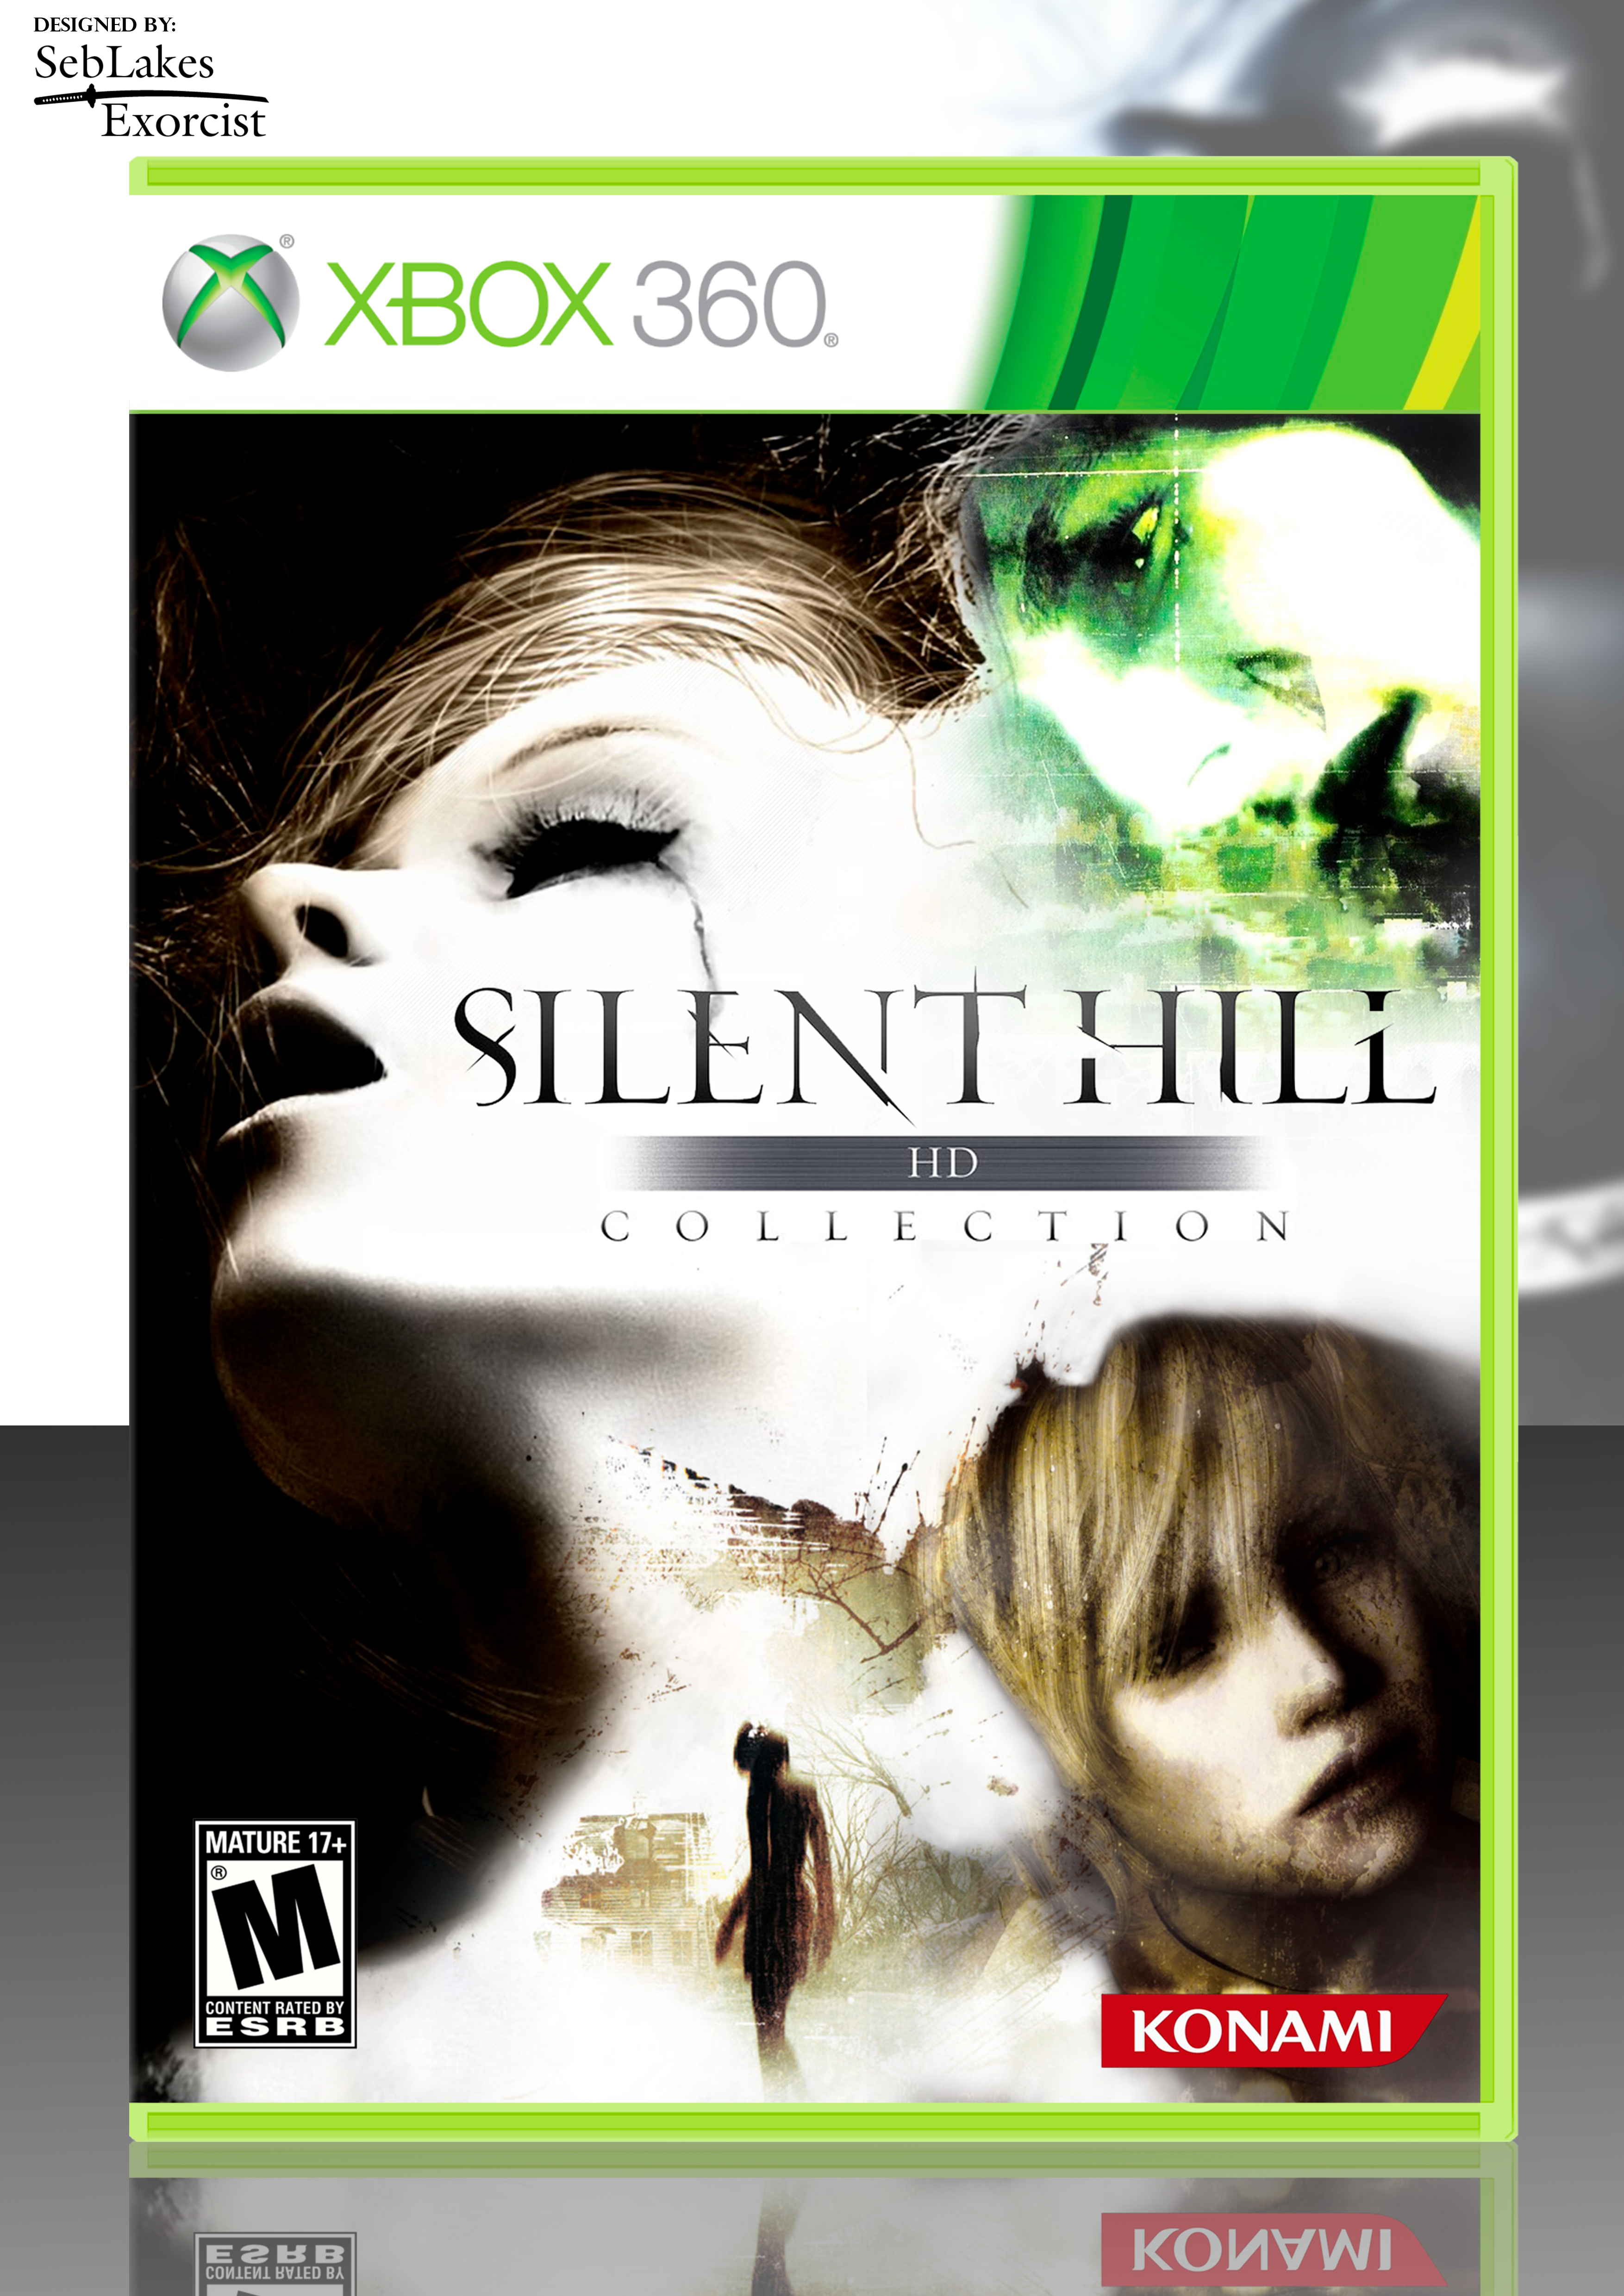 Silent Hill Hd Collection Cover Art By Seblakes Exorcist Box Art Silent Hill Art